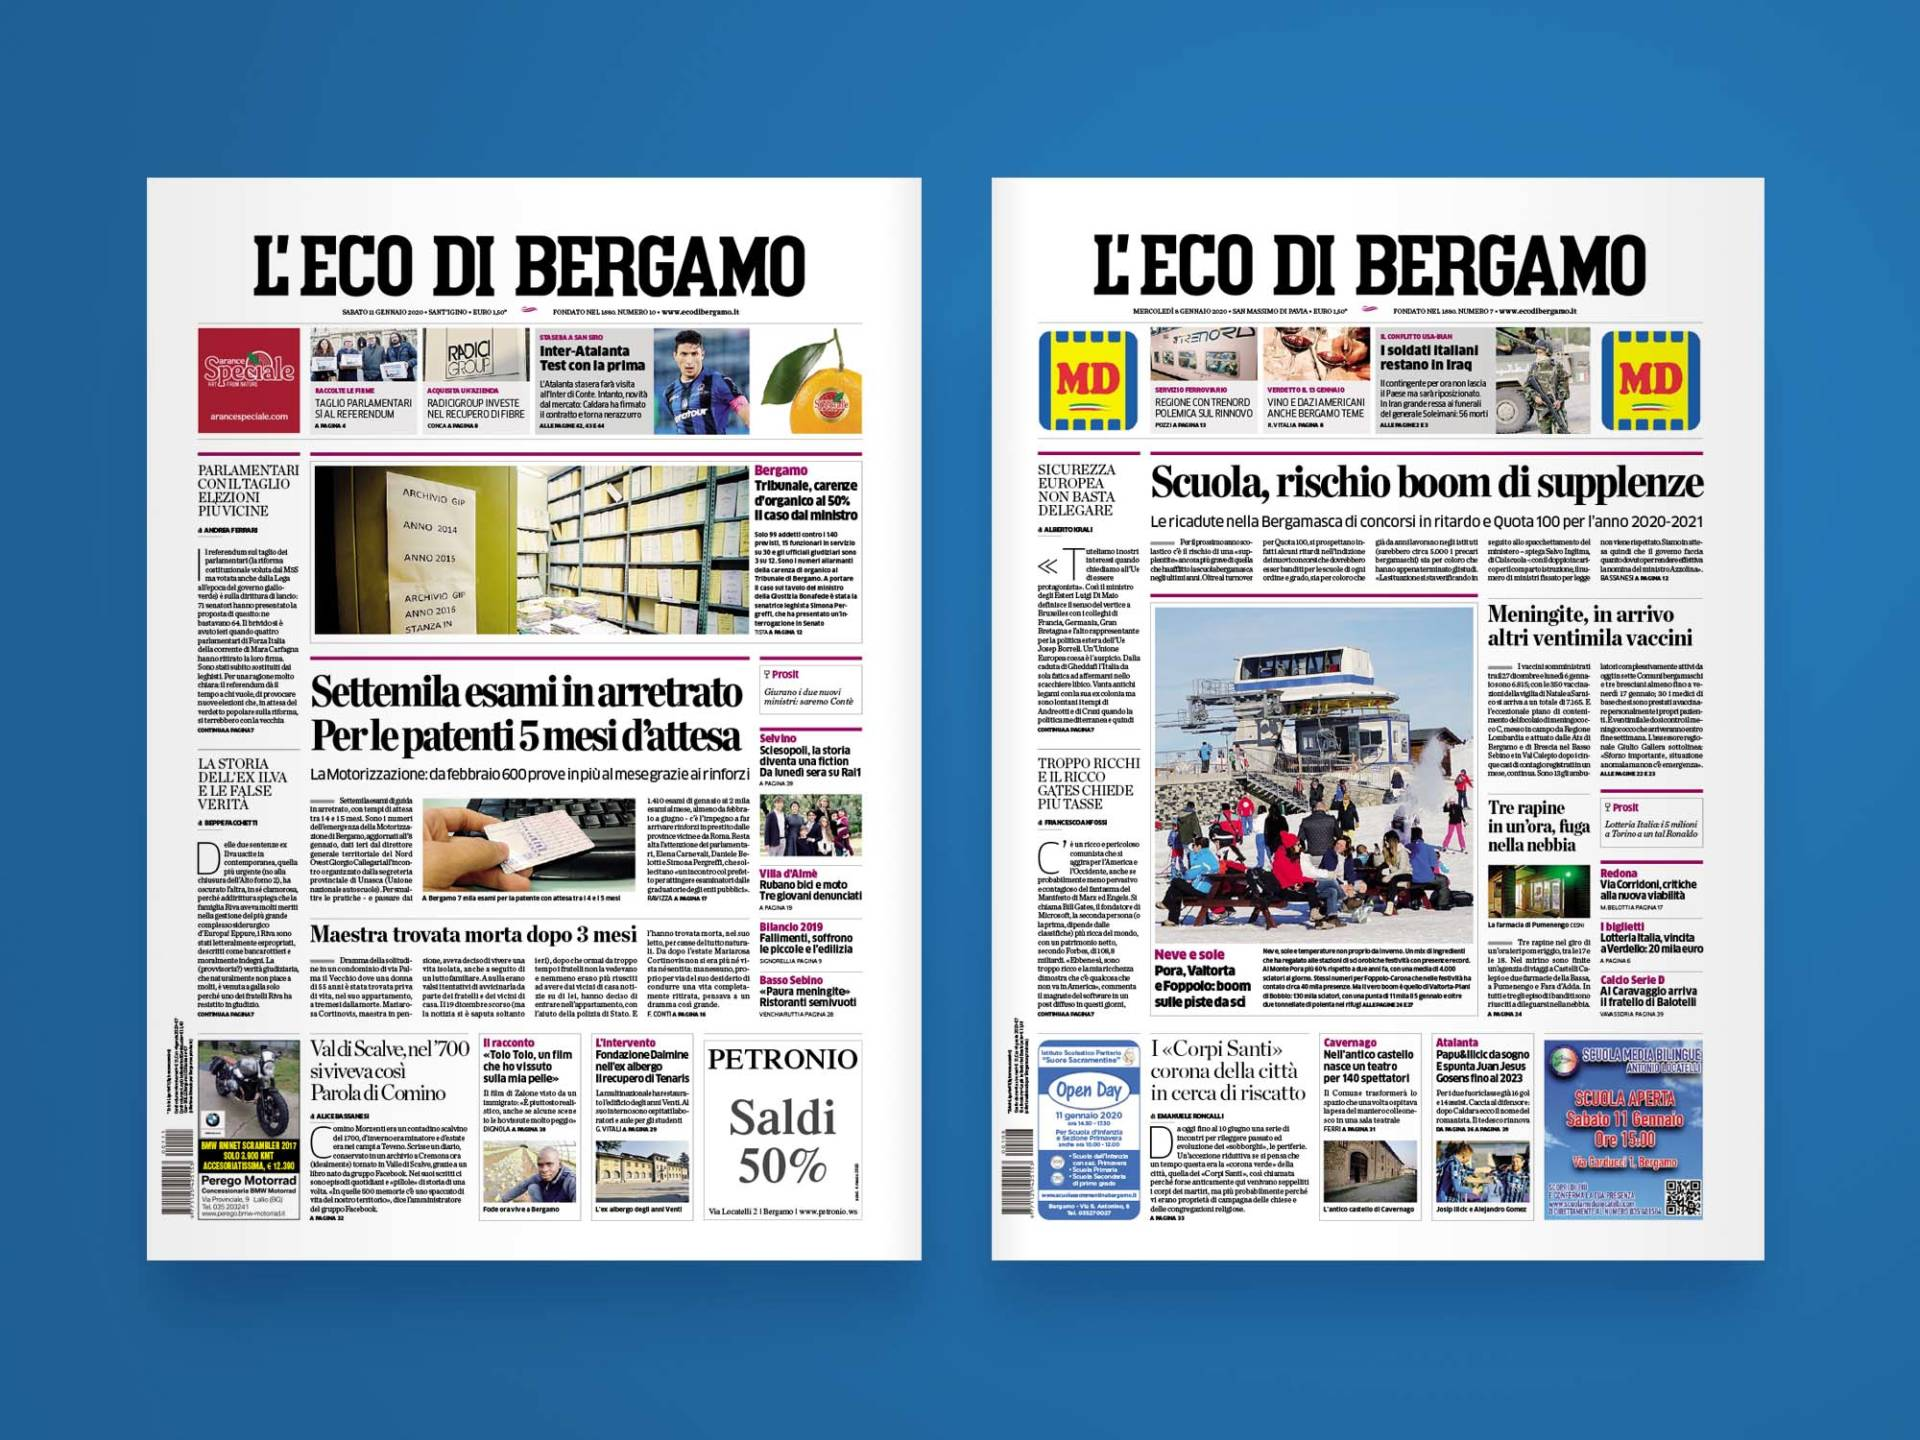 L'Eco_di_Bergamo_12_Wenceslau_News_Design